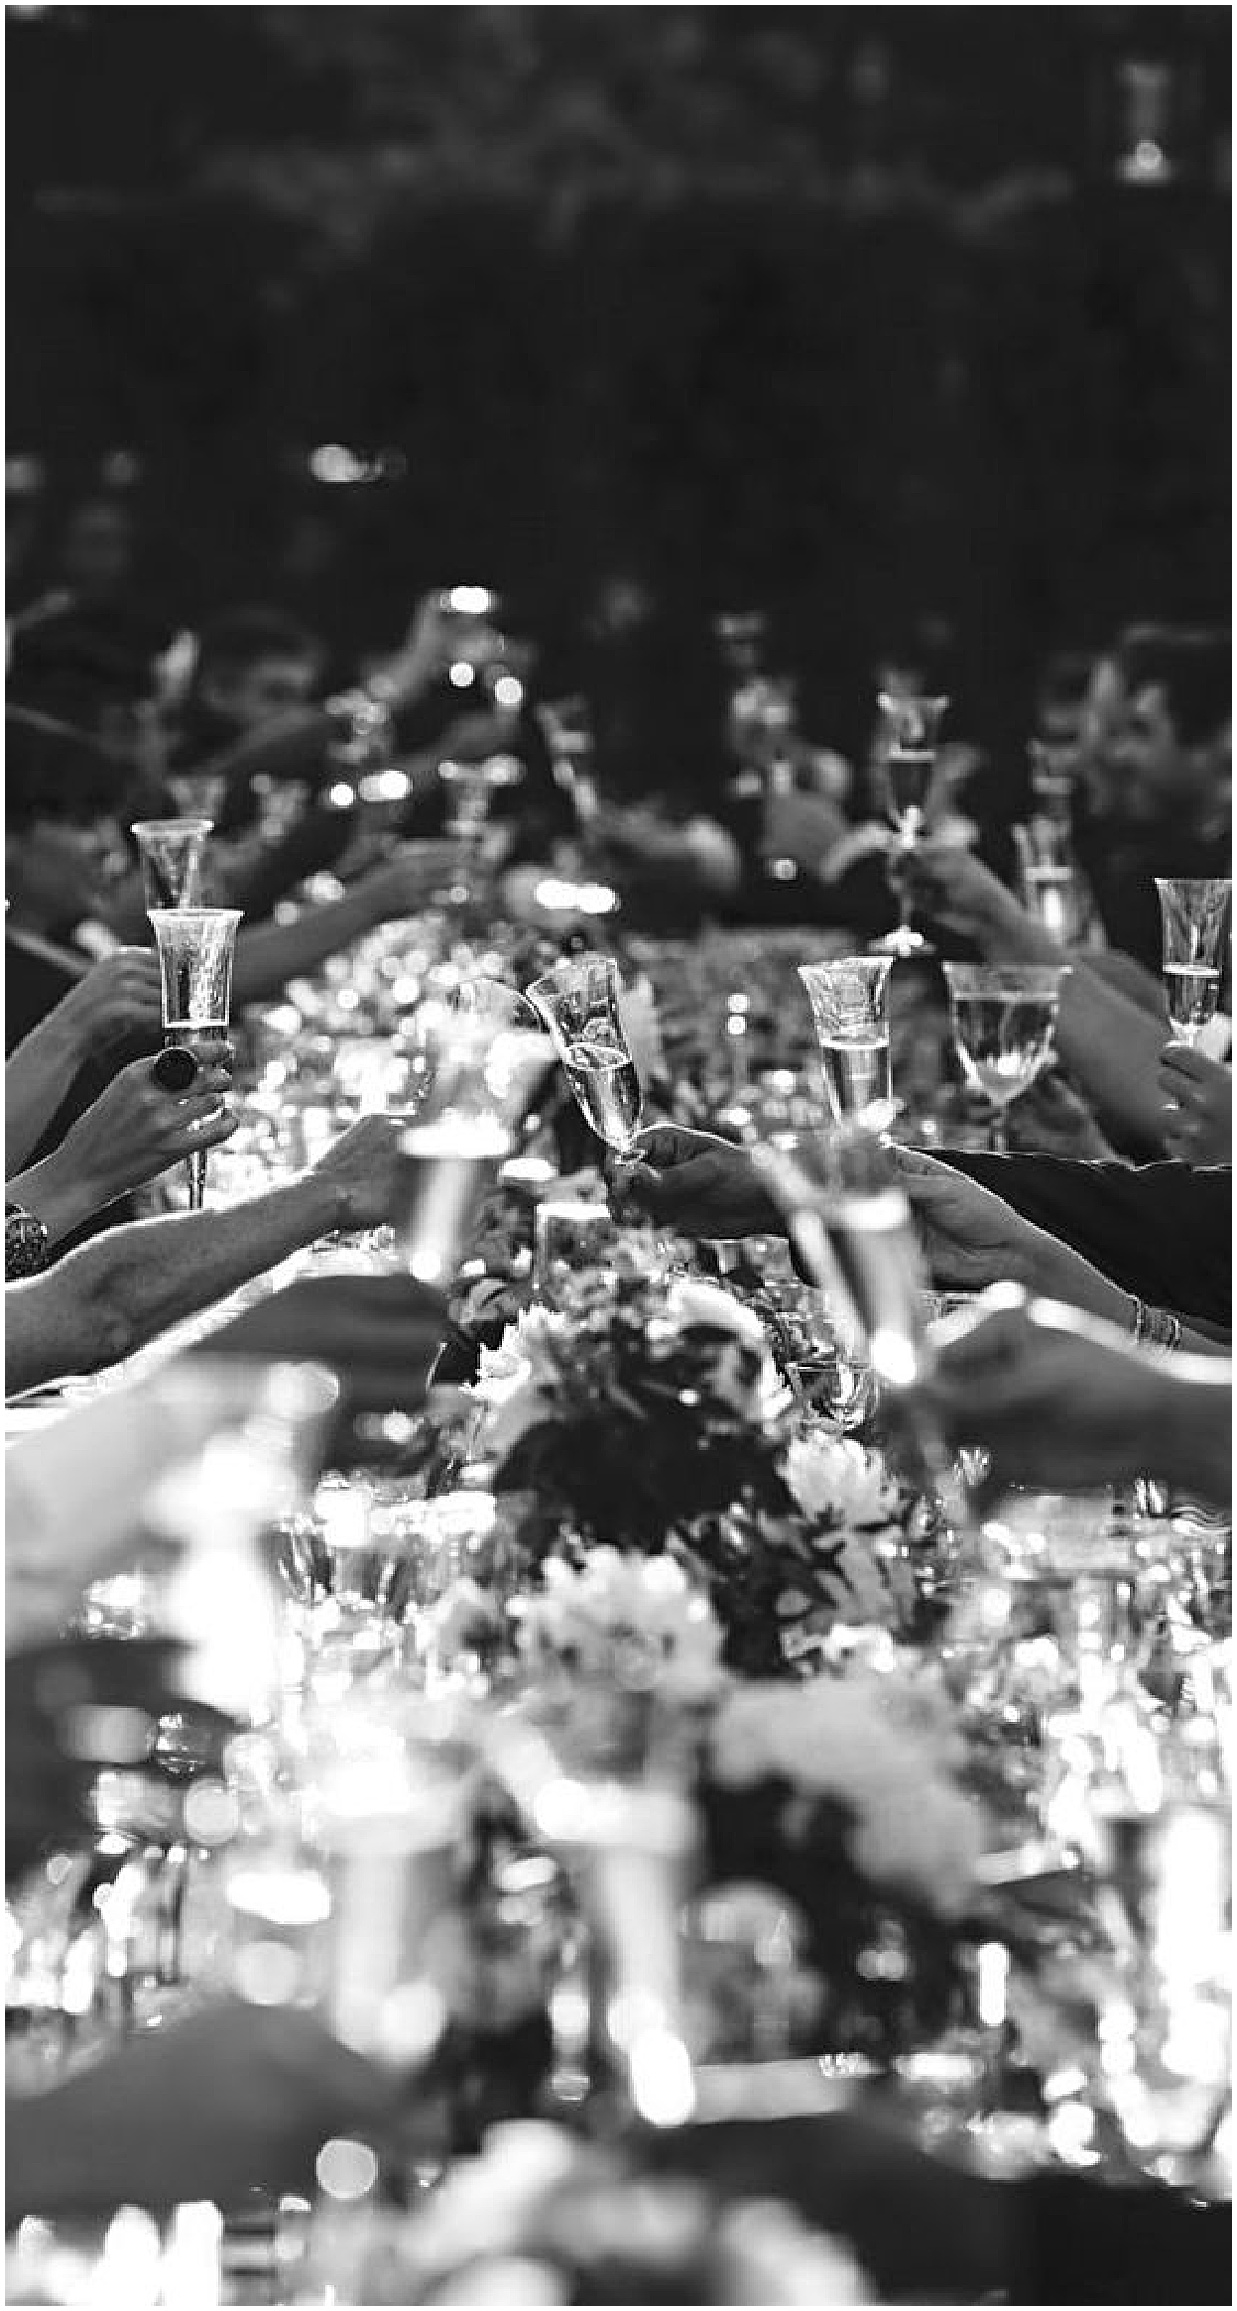 indiana wedding, midwest wedding, olivia rink wedding, ballroom wedding, regal wedding, classic wedding, historic ballroom wedding, olivia rink big city bride, wedding champagne tower, vintage wedding, old hollywood glamour wedding, 2020 wedding, covid bride, wedding inspo, wedding inspiration